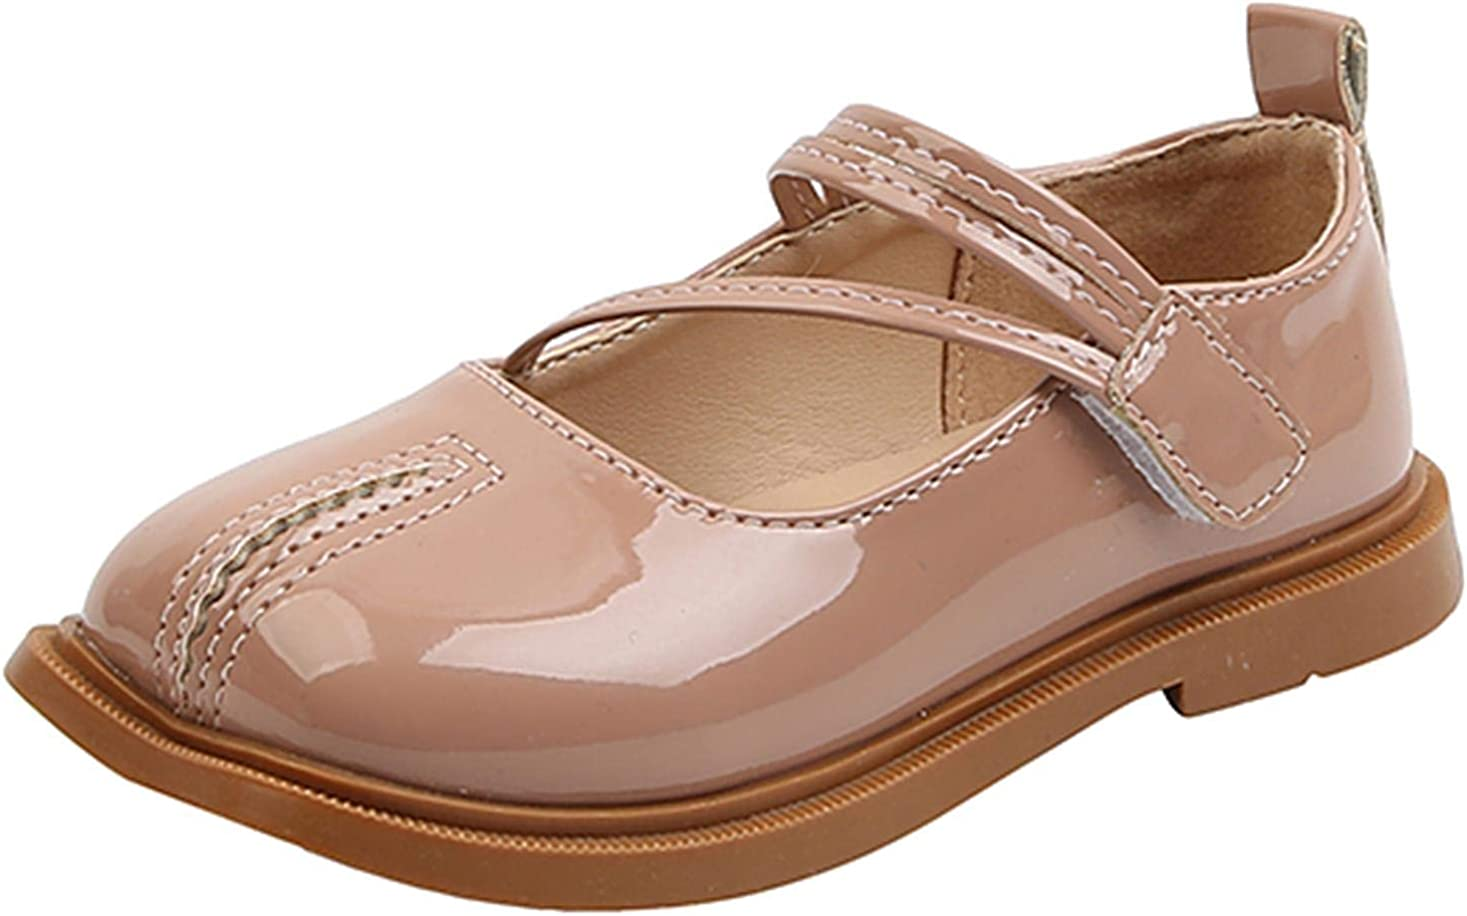 PPXID Toddler Little Girls Soft Sole Oxford Flats Princess Ankle Strap Mary Janes